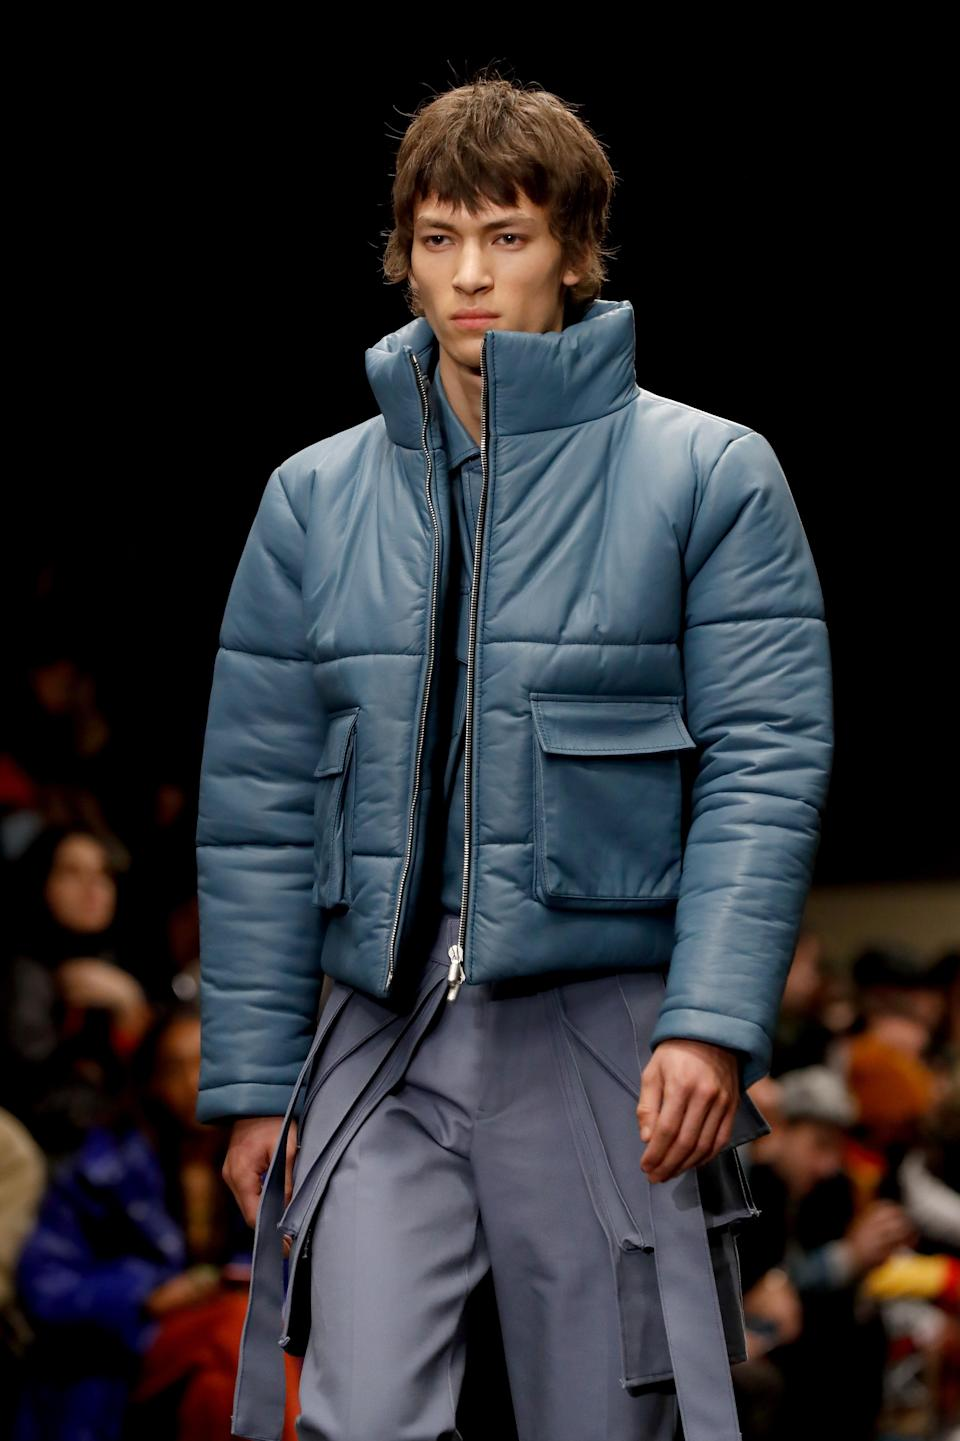 Rhude's sportswear wardrobe, which featured cargo pants and functional quilted jackets, was also offered in a range of colors from blue to pink. Paris, January 14, 2020.